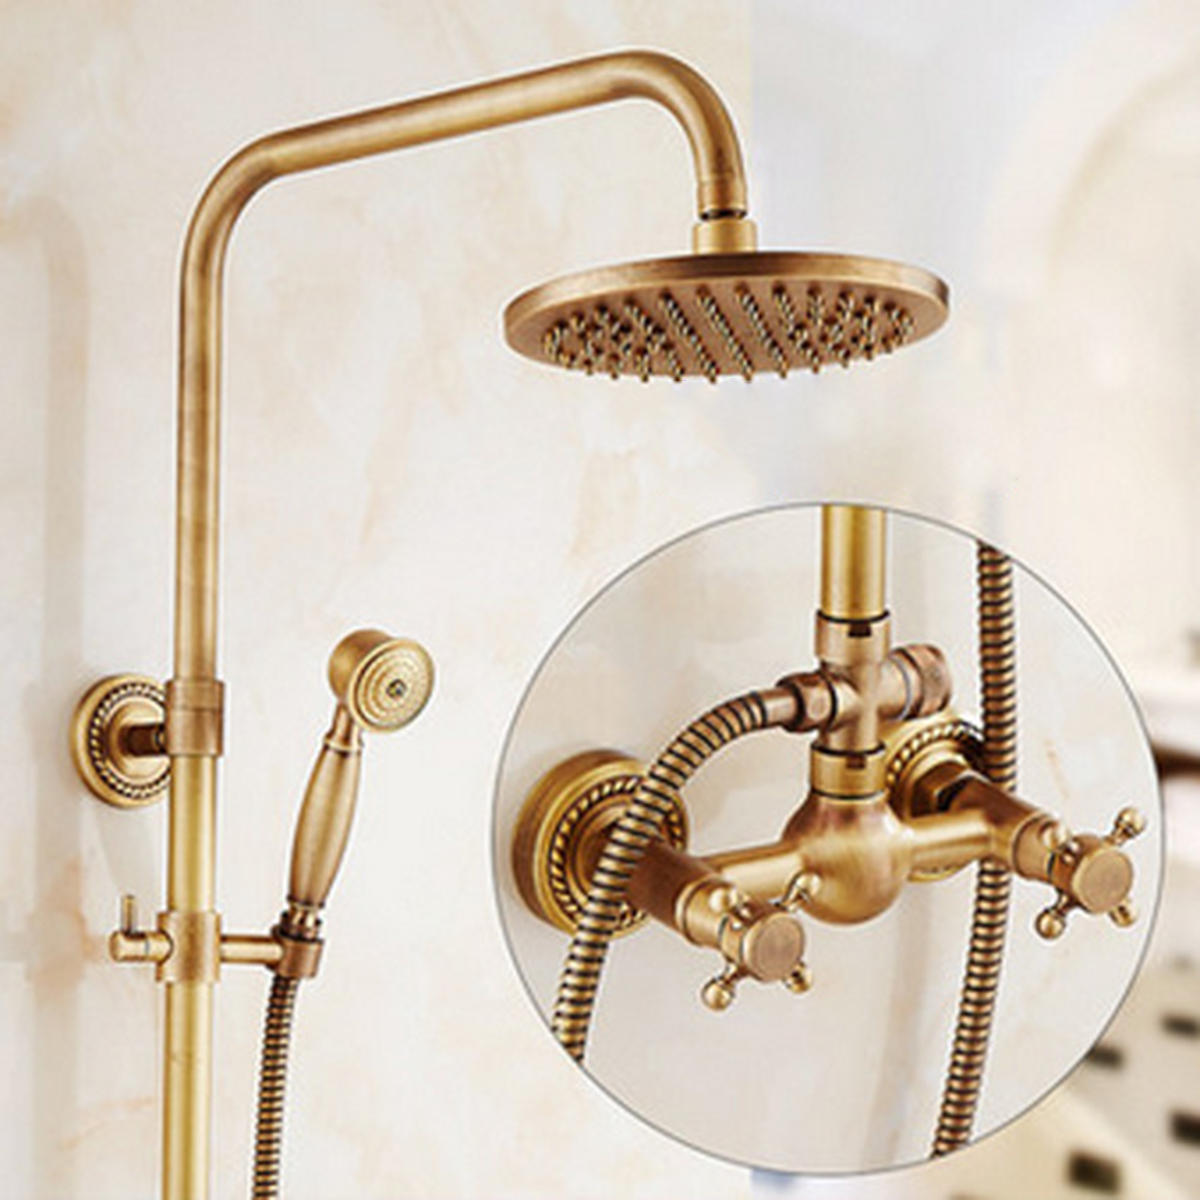 Antique Brass Bath Rain Shower Mixer Tap Rainfall Shower Head Kit